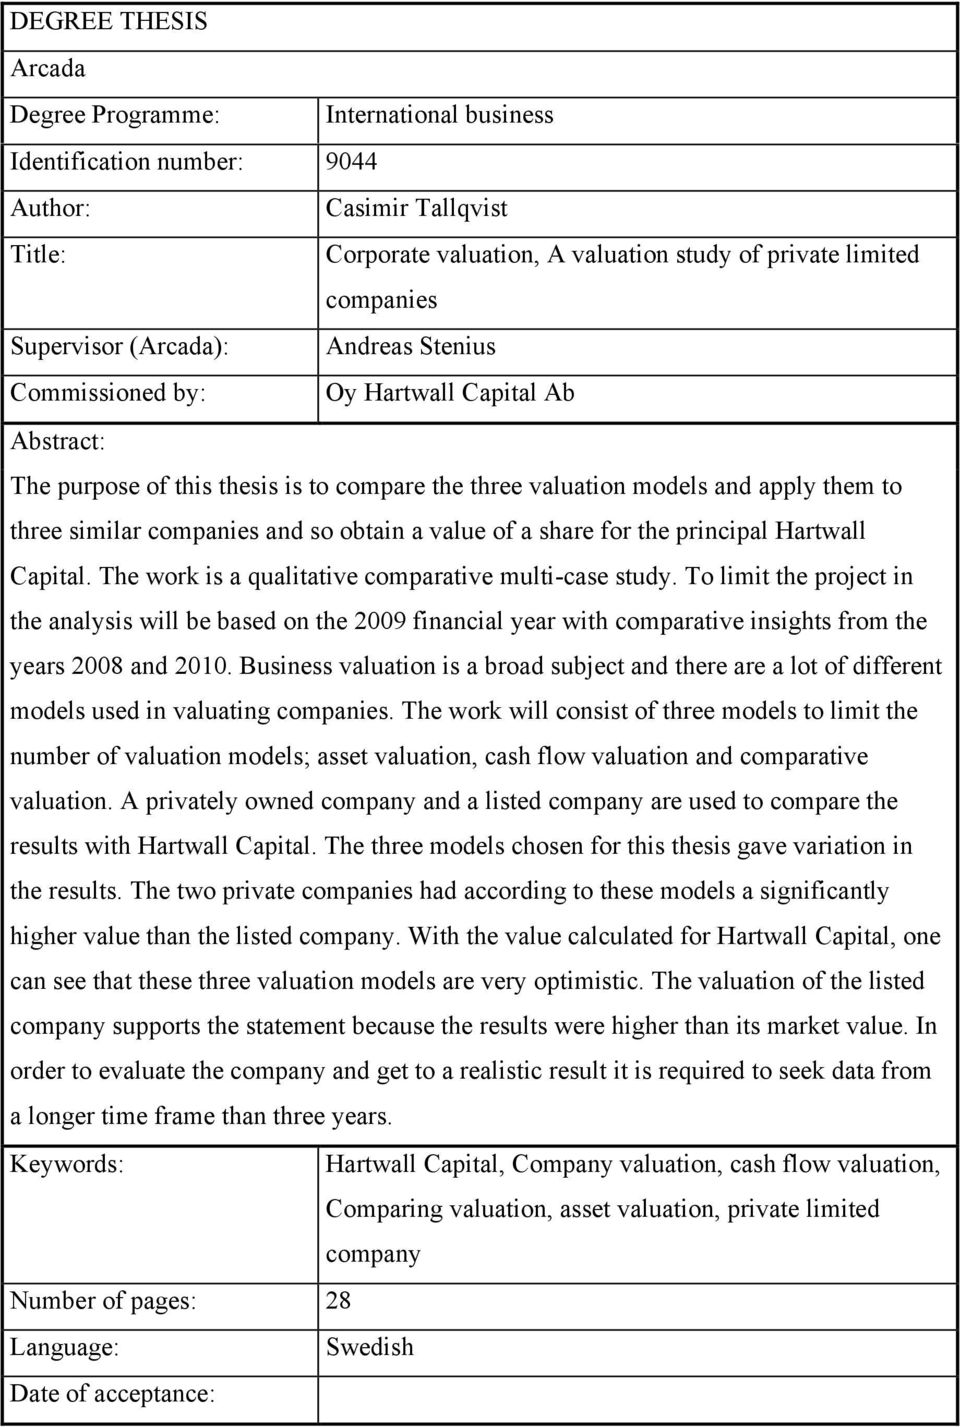 and so obtain a value of a share for the principal Hartwall Capital. The work is a qualitative comparative multi-case study.